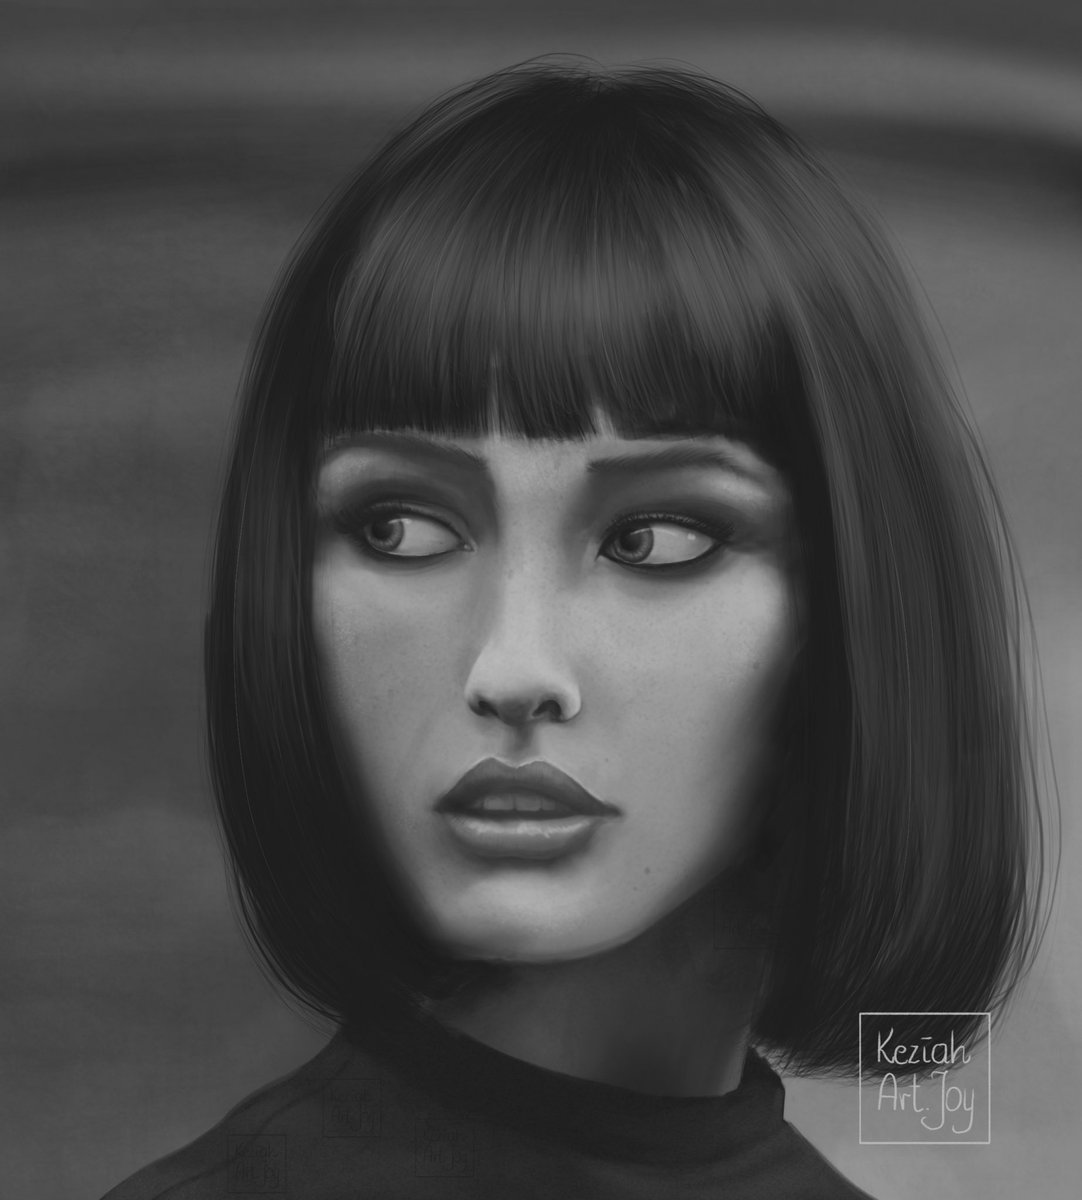 Keziahartjoy On Twitter Second Attempt To Greyscale Painting Greyscale Grayscale Portrait Art Procreate Womanportrait Artist Art Portret Https T Co Ewqztplqbo